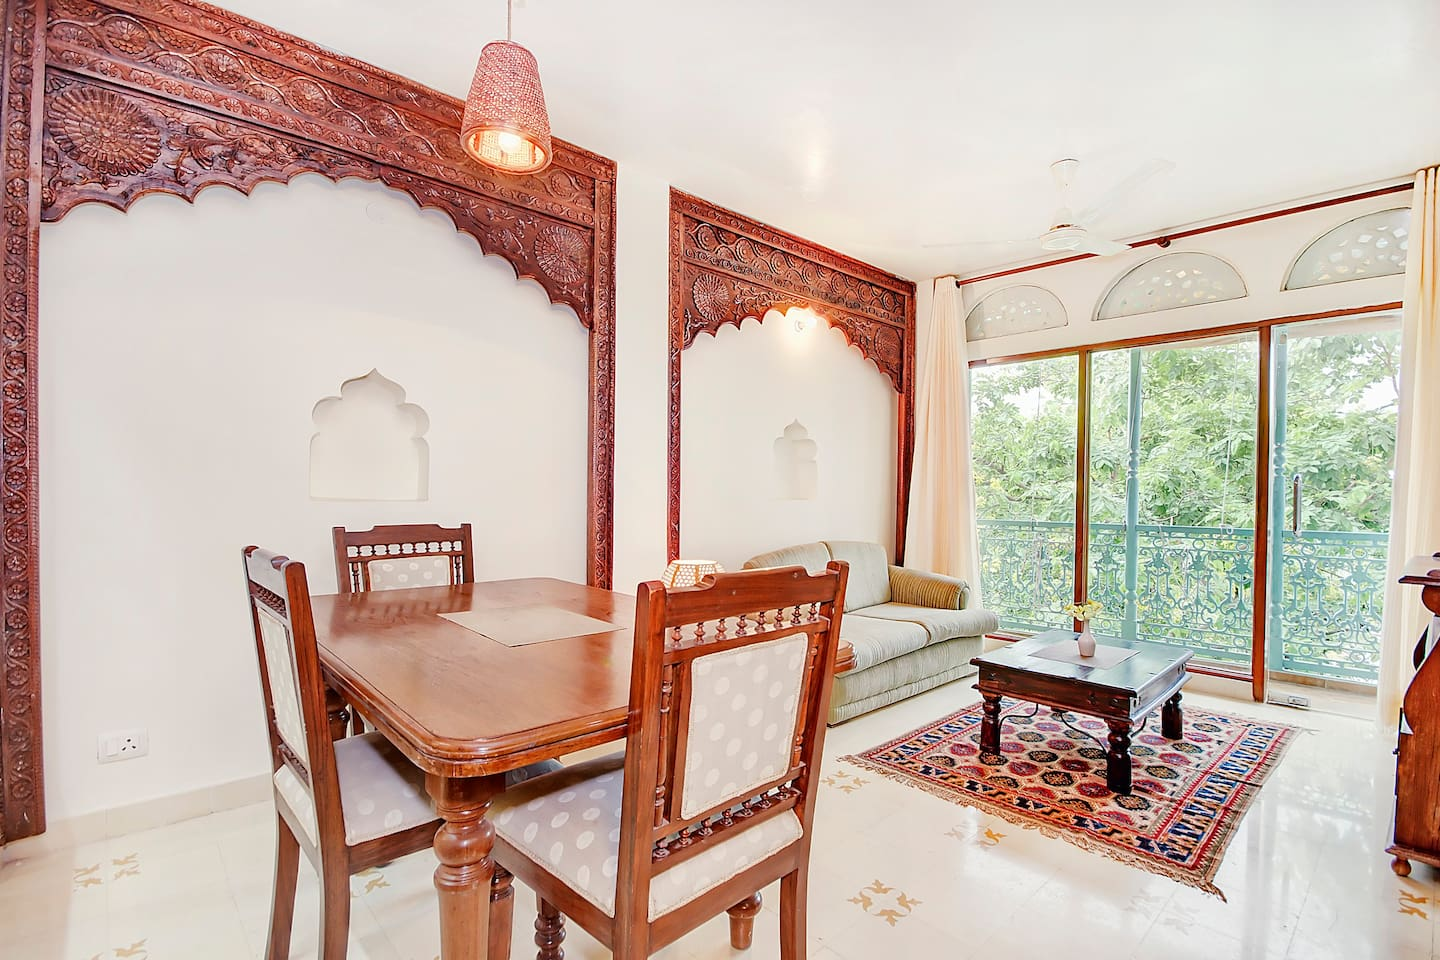 Living cum Dining Room, Overlooking Hauz Khas Pond and 13th Century Monument. Mehrab (Wooden Arches) are old pieces restored from Rajasthan Havelis.